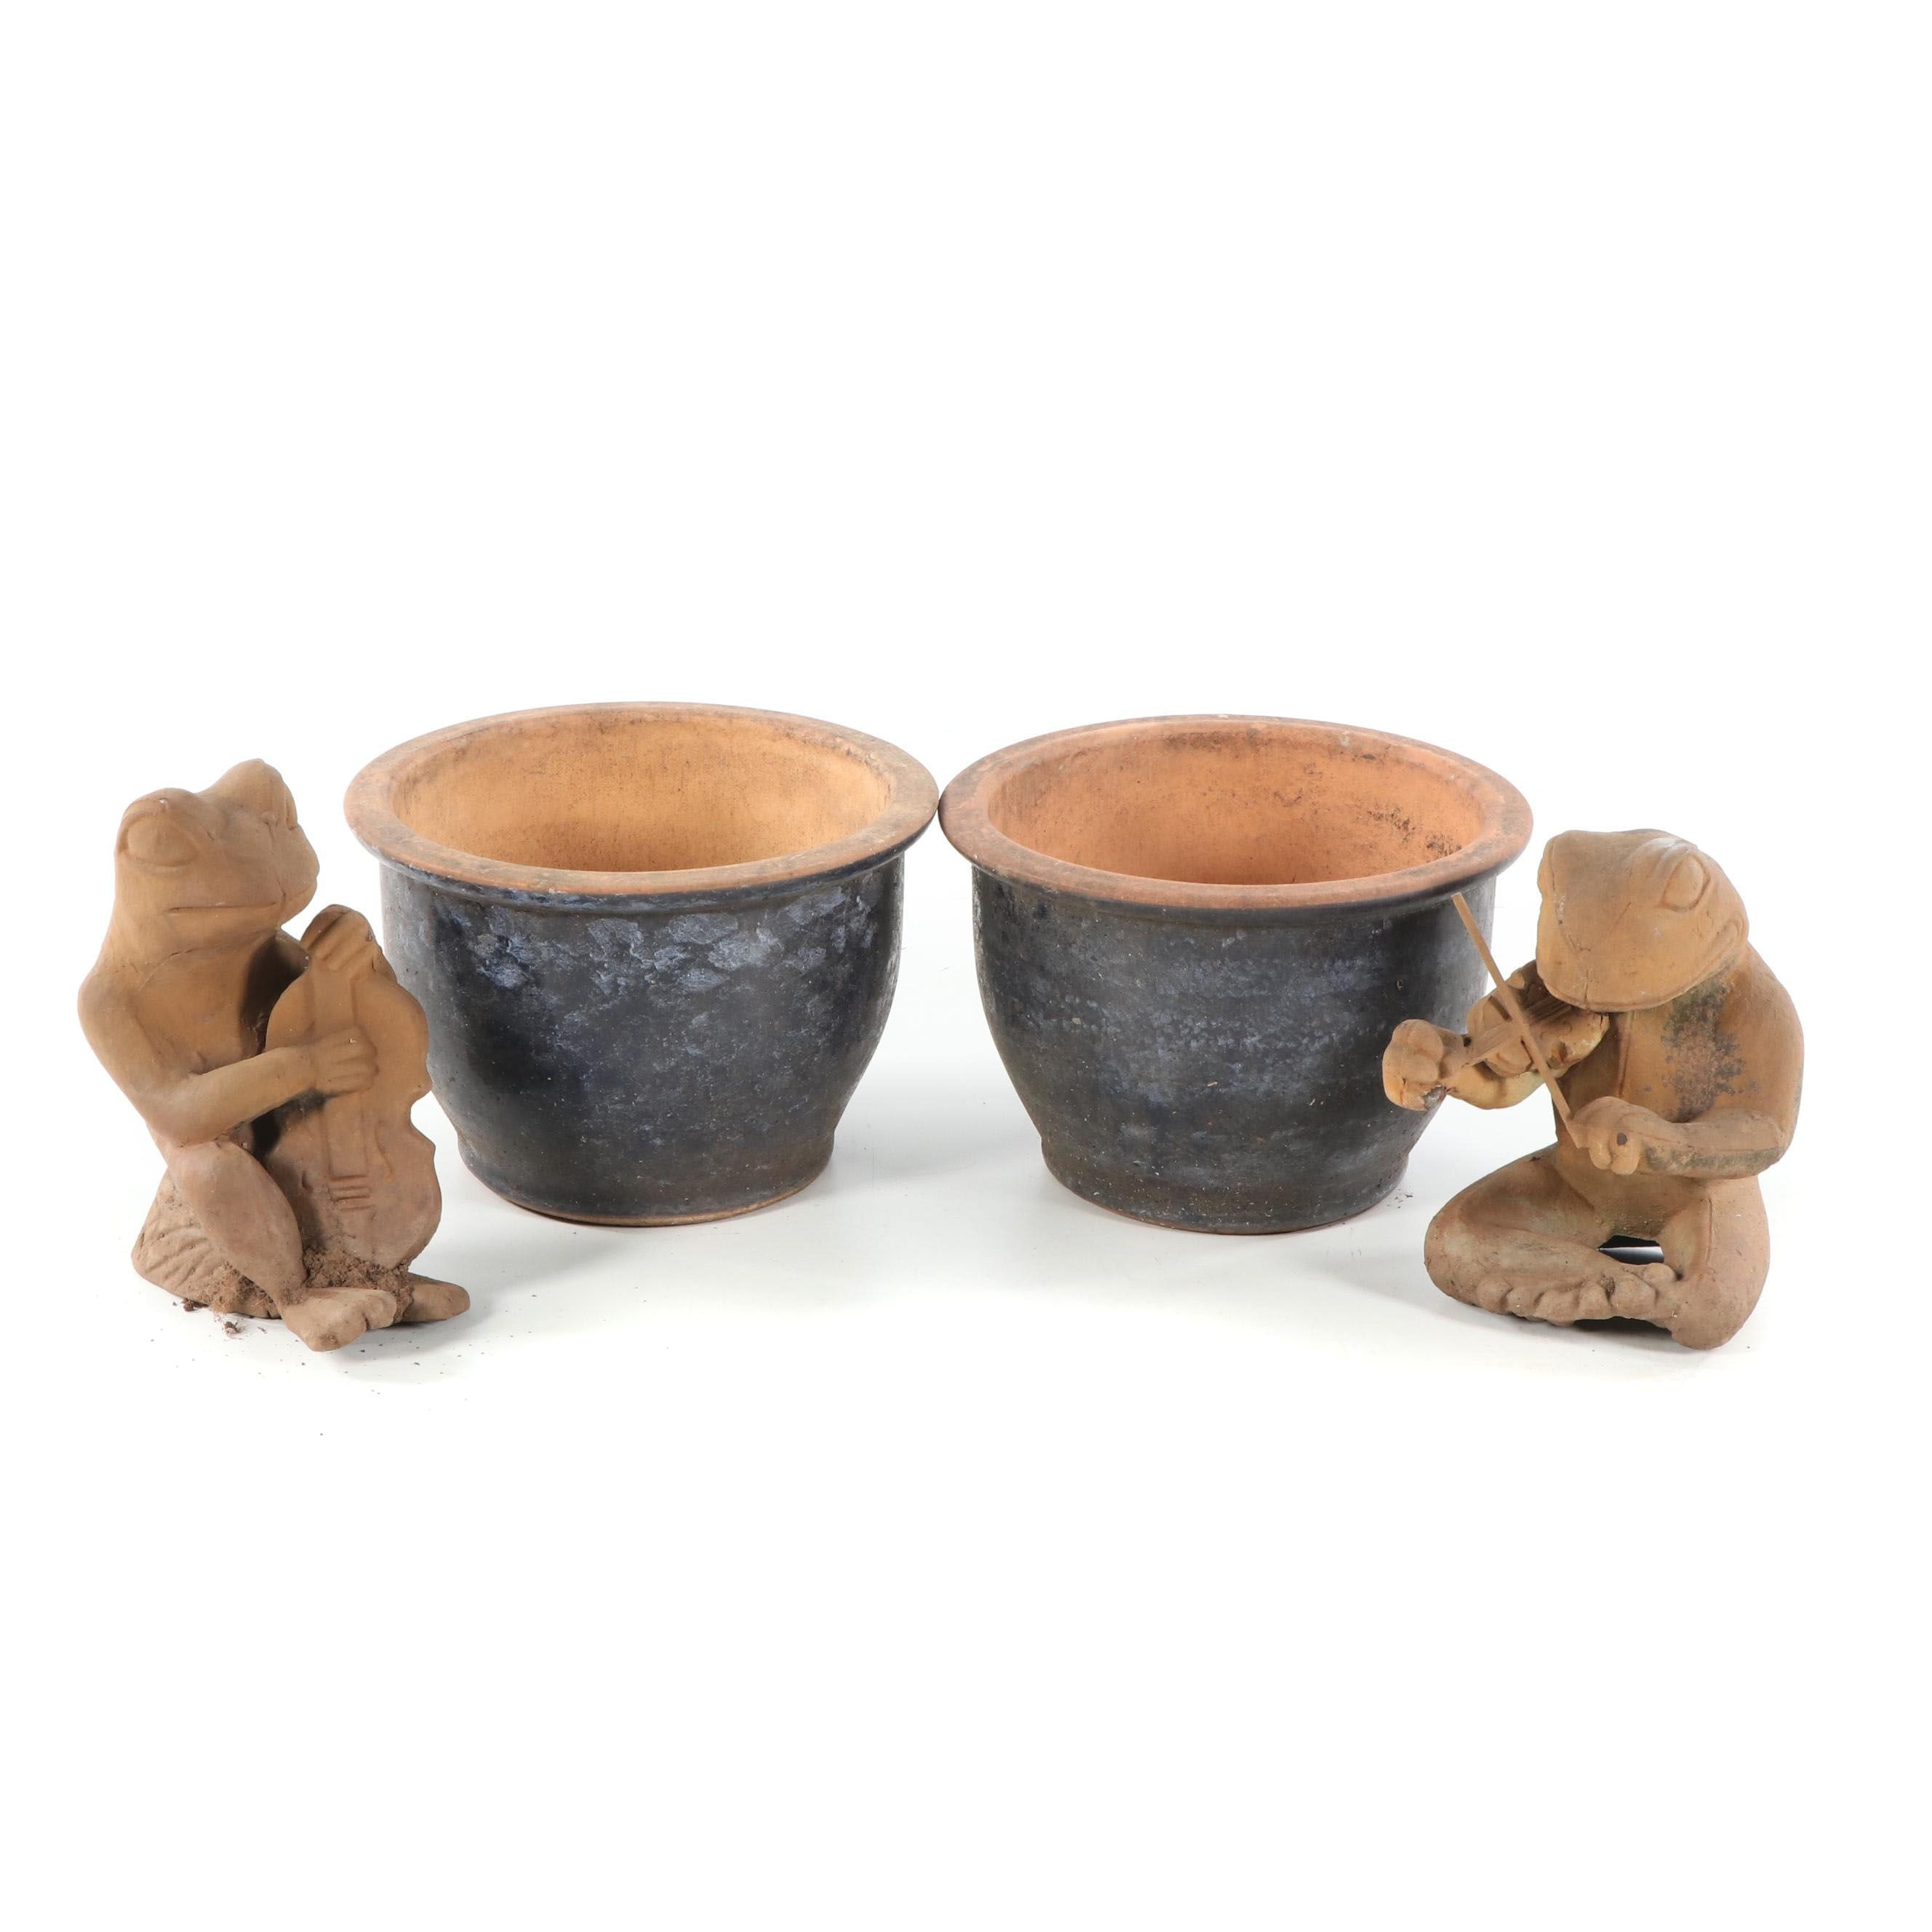 Earthenware Planters and Frog Figurines, Late 20th/21st Century